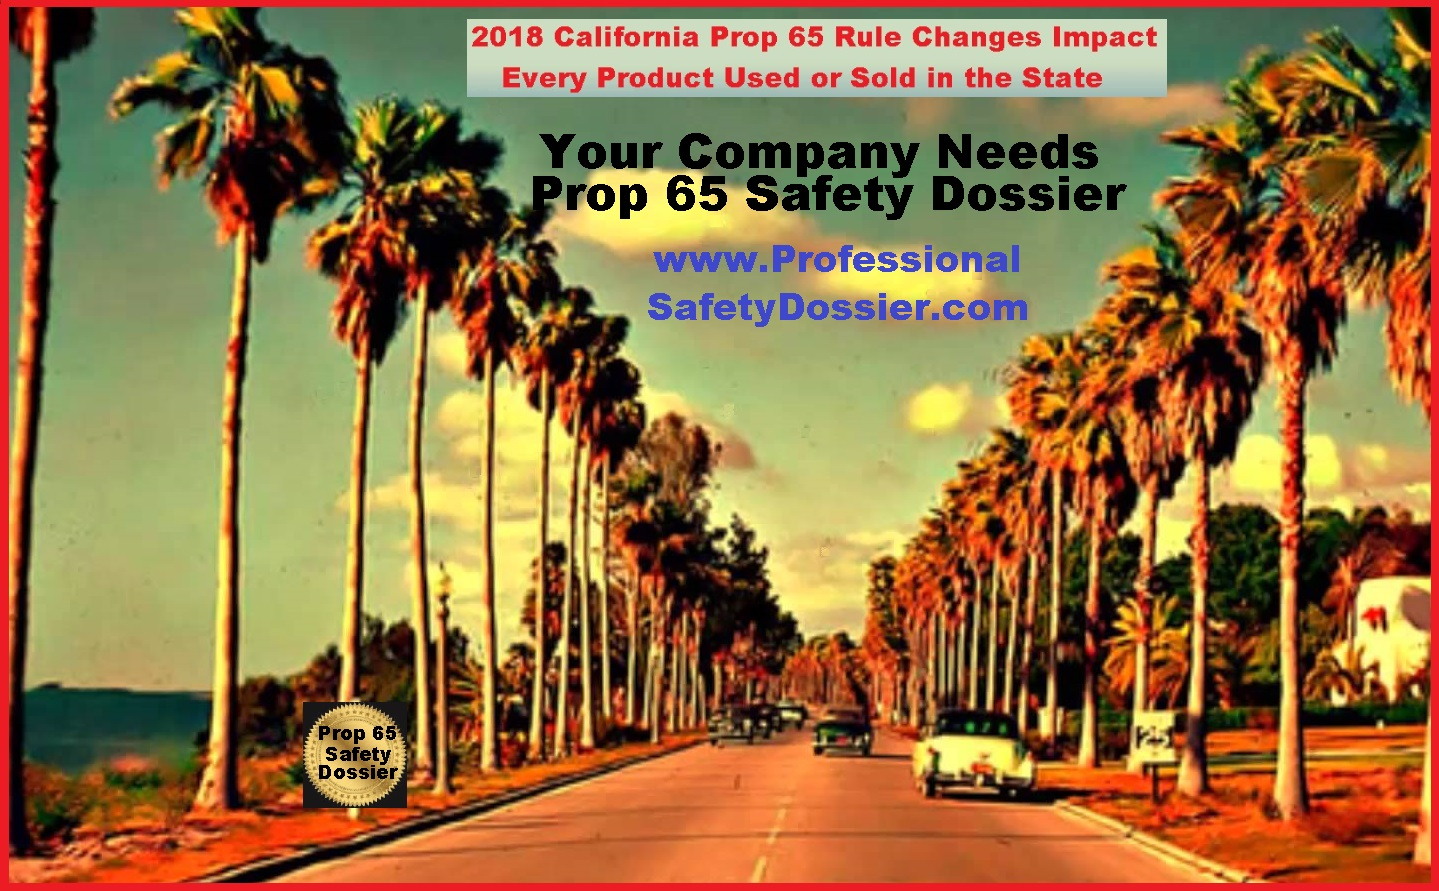 Proposition 65: California Ratchets Up Cancer/Repro Harm Warning Rules